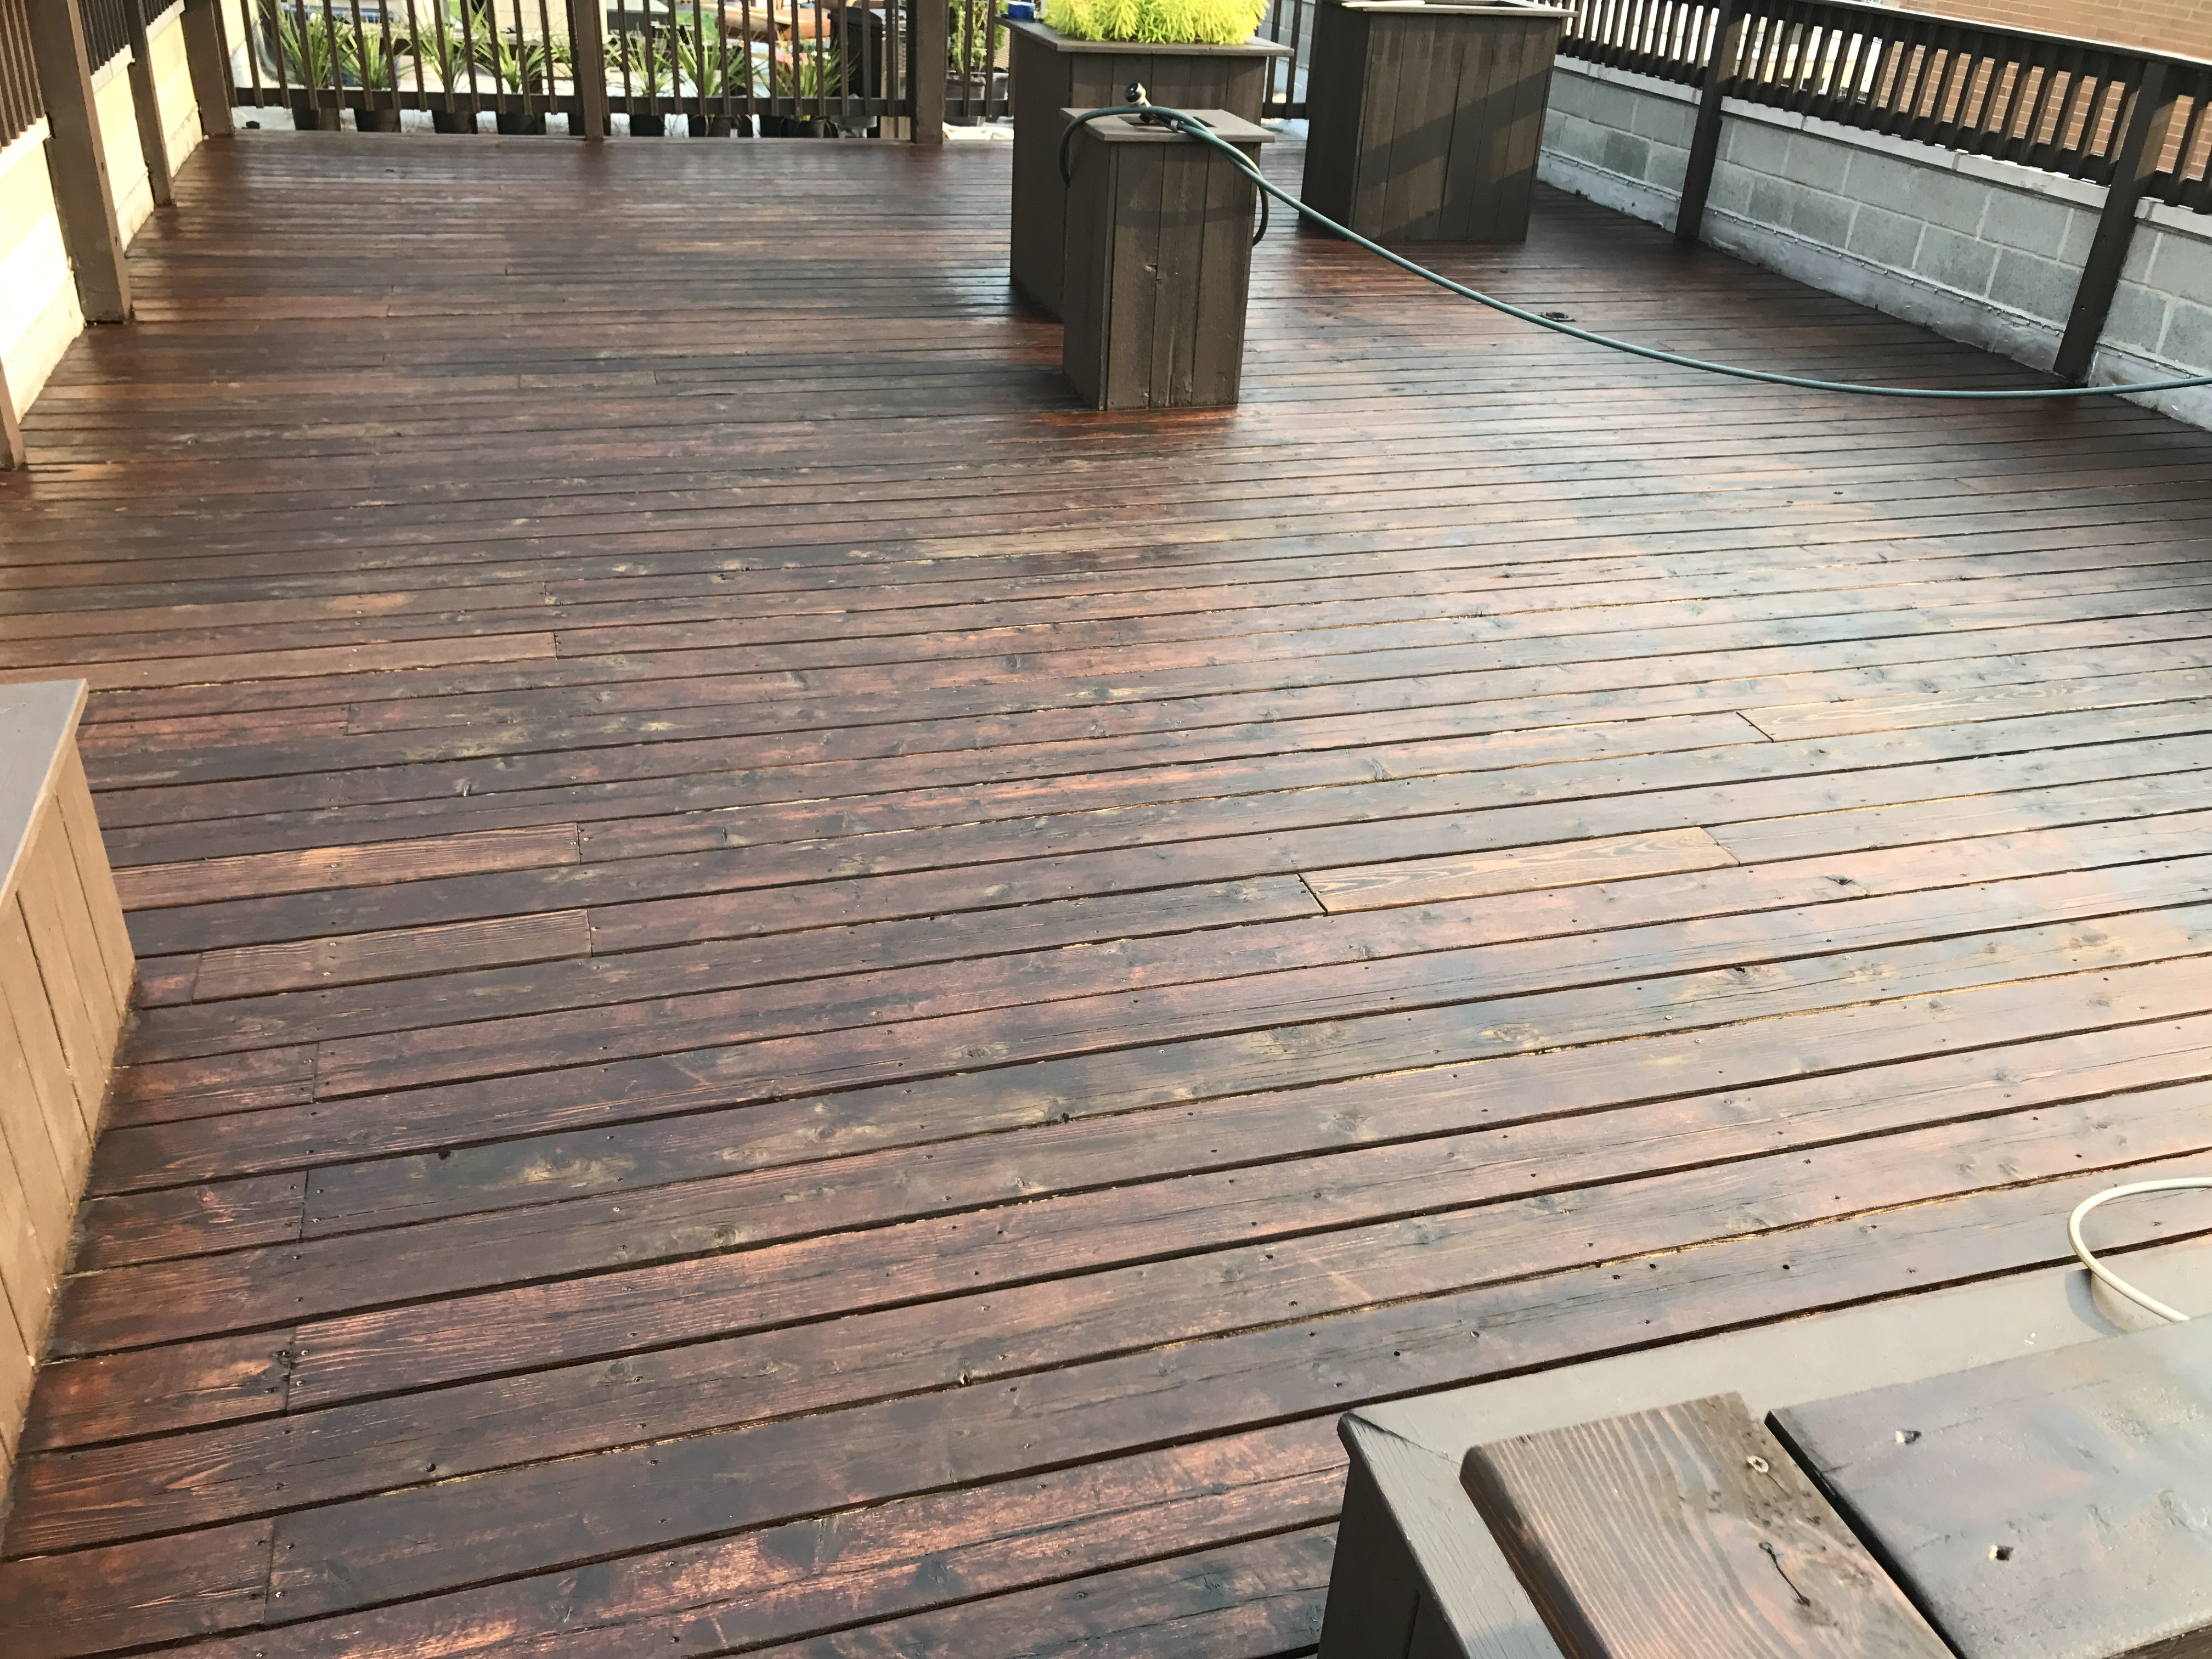 Dry And Curing Time Of Twp Wood Deck Stains Twp Stain Help And